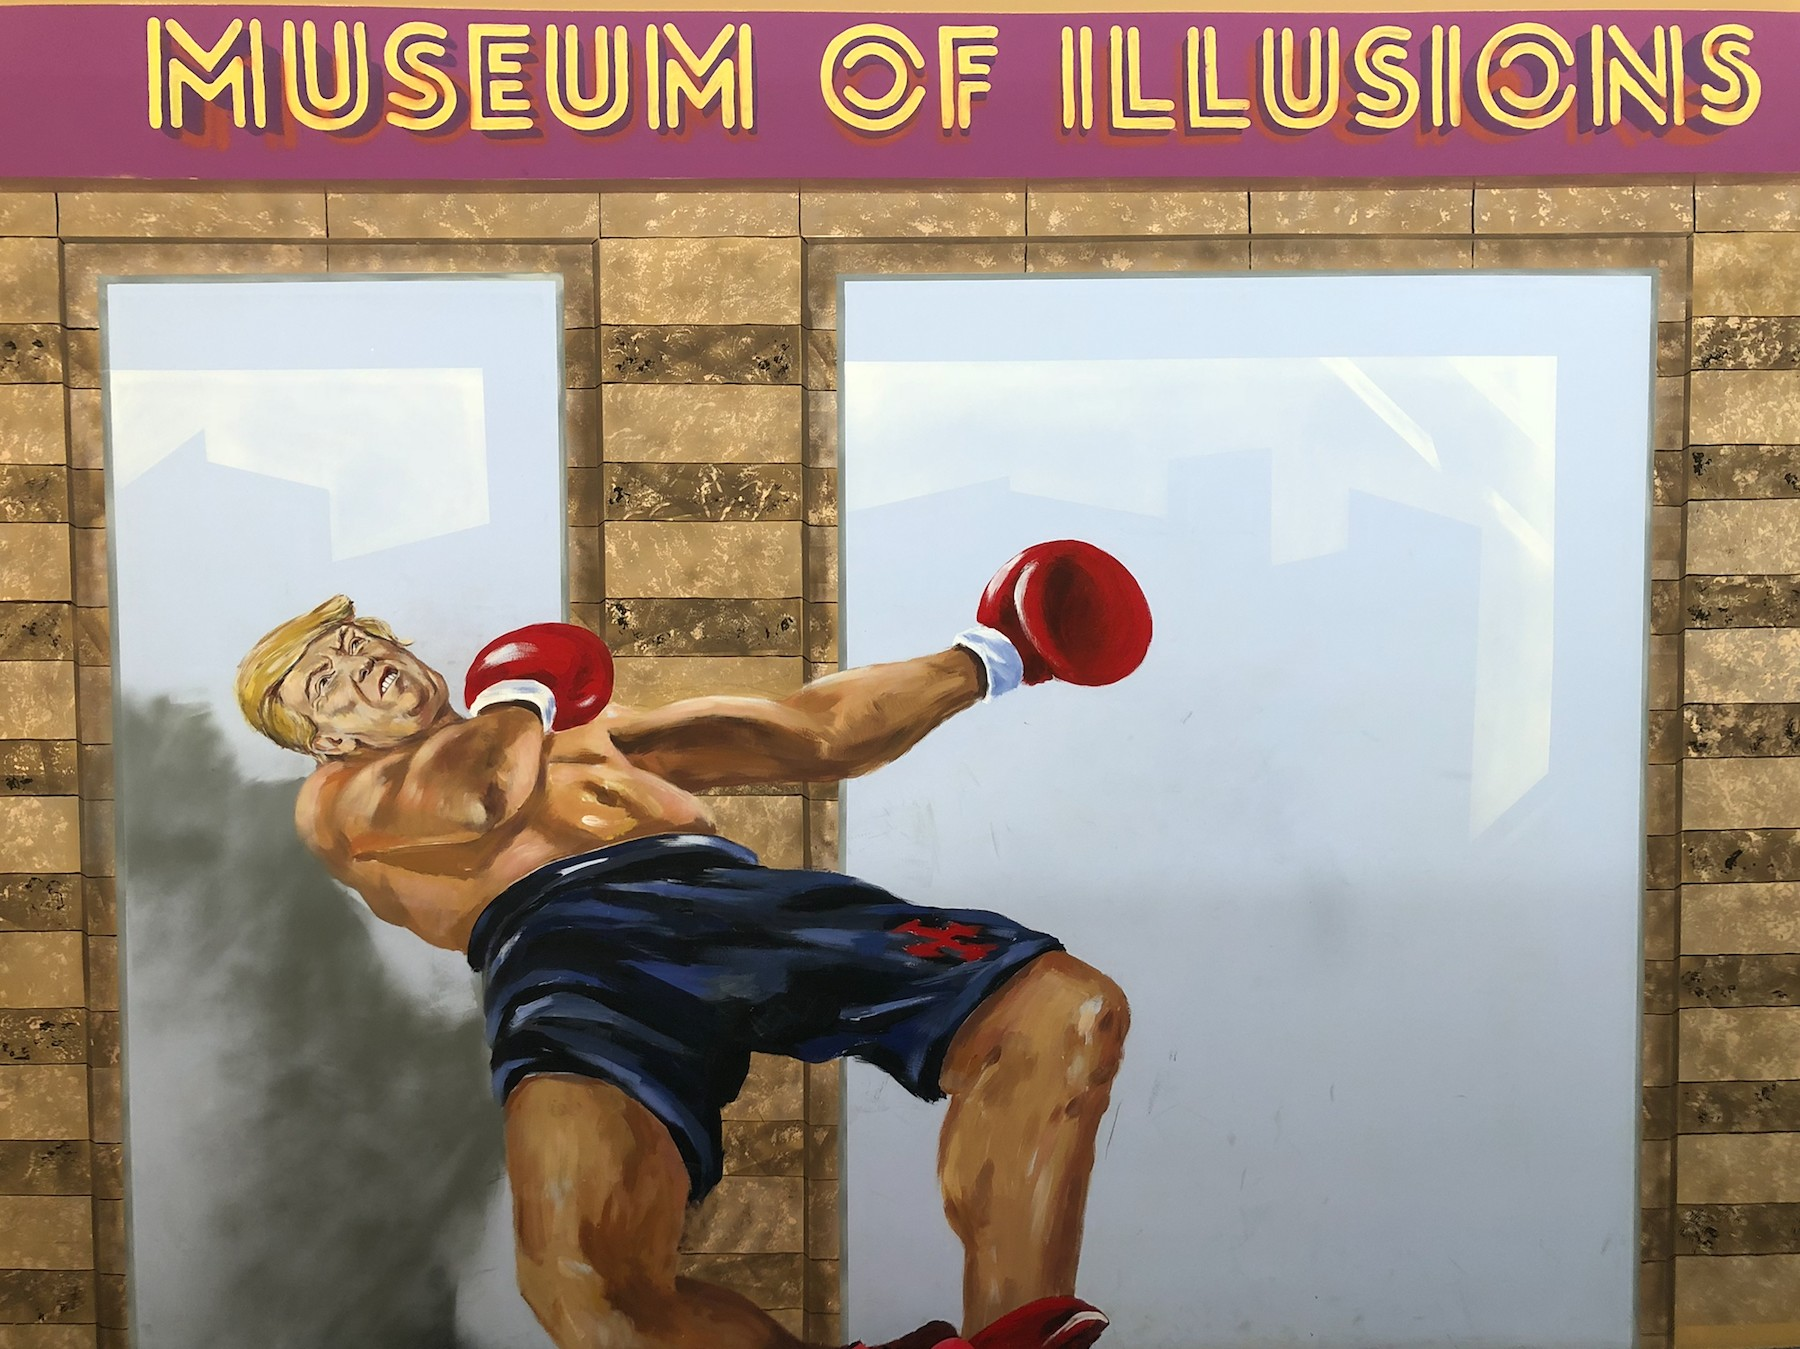 Museum of Illusions is a disappointing trip   Daily Trojan